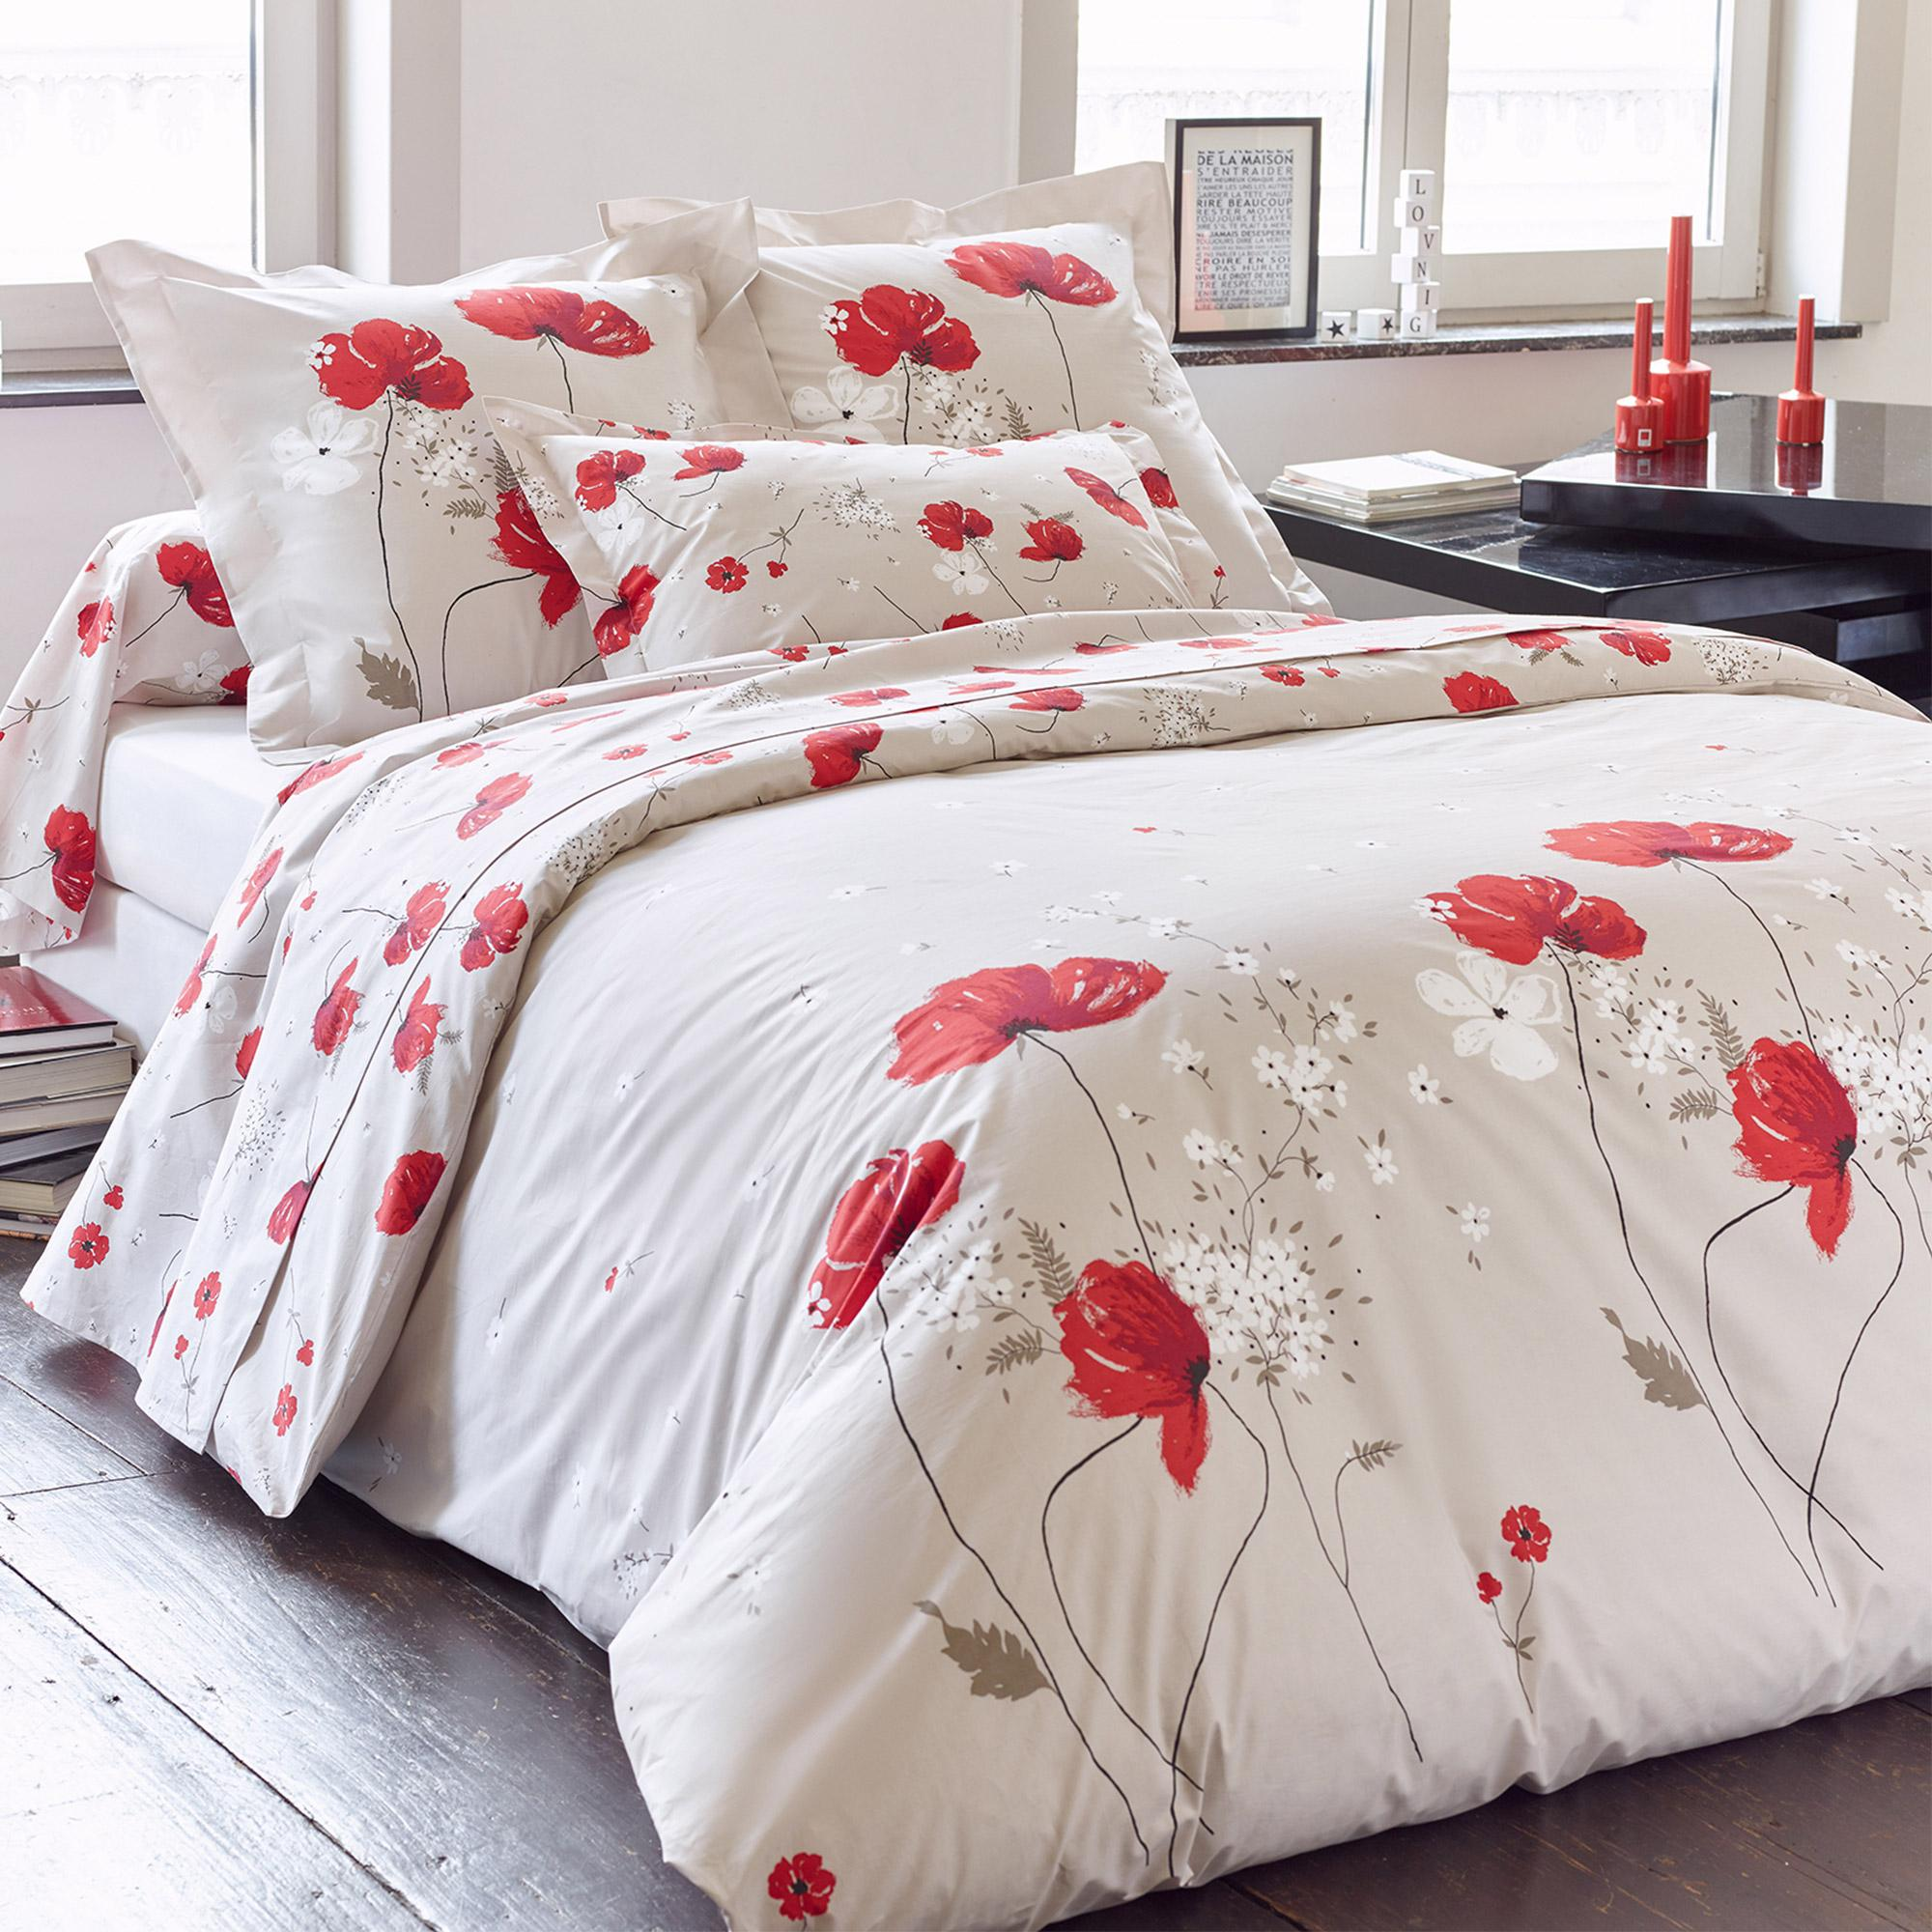 housse de couette 300x240 cm percale pur coton cybele flowers ecru linnea linge de maison et. Black Bedroom Furniture Sets. Home Design Ideas